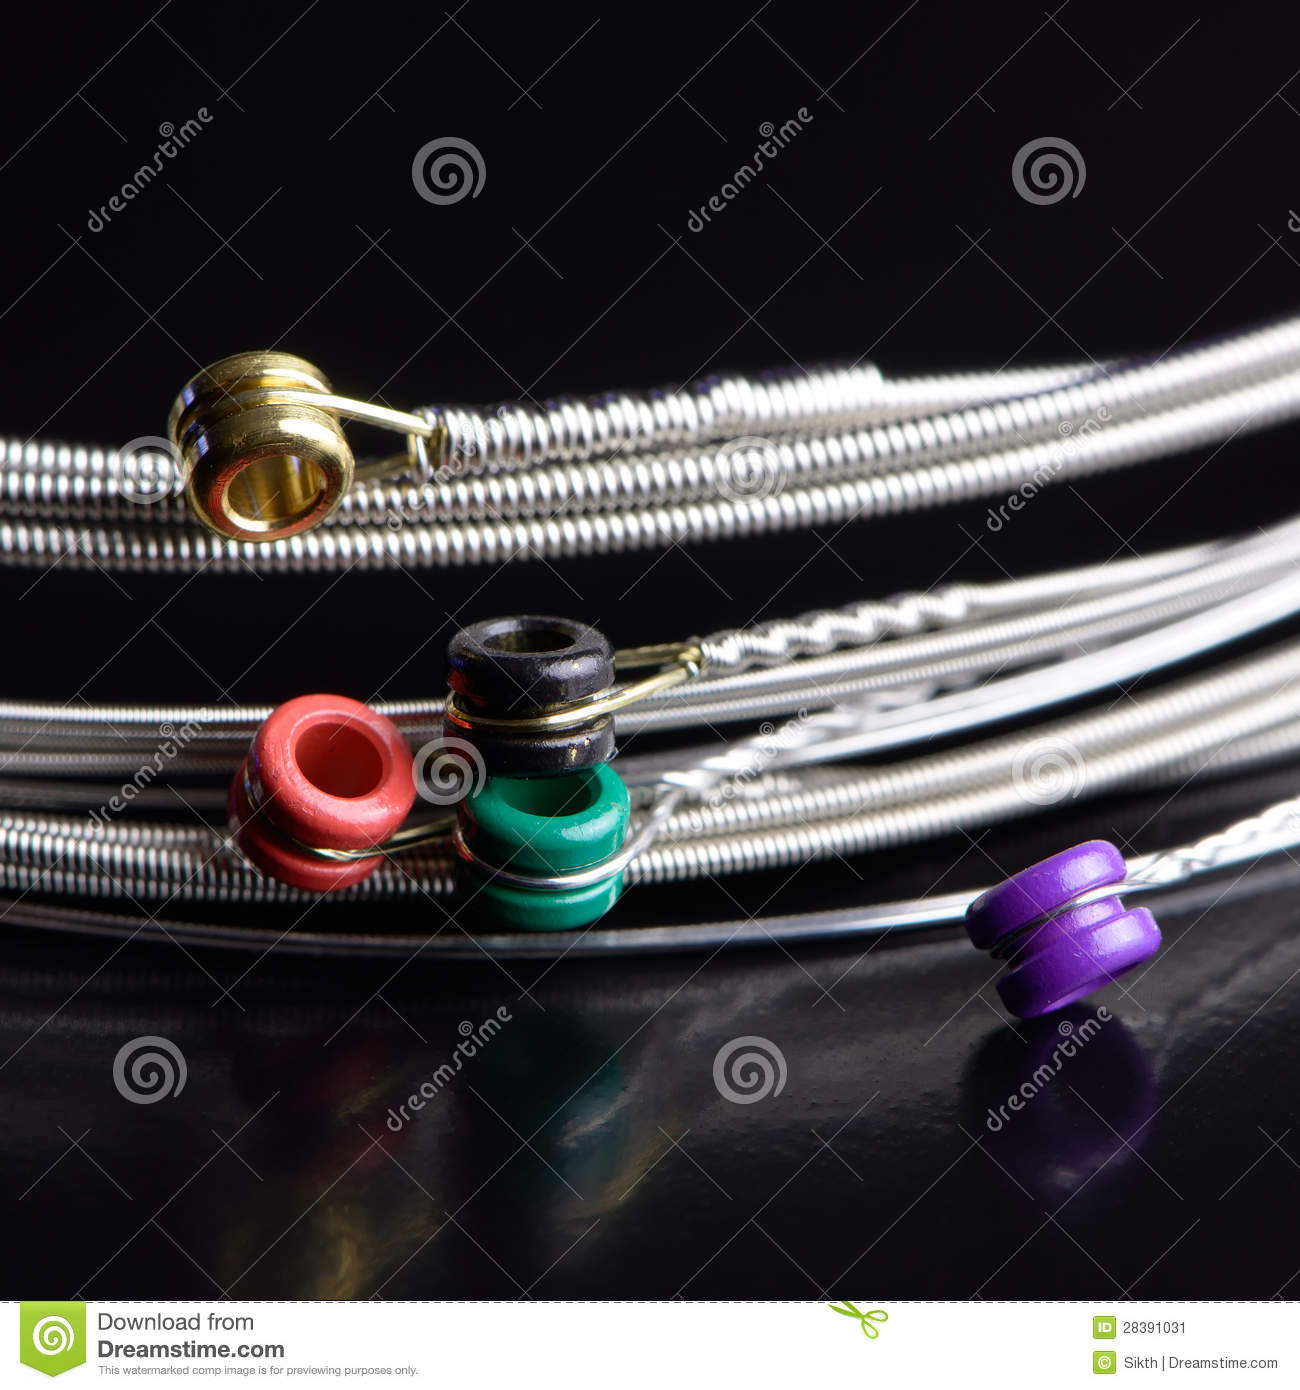 guitar strings close up stock photos royalty free images. Black Bedroom Furniture Sets. Home Design Ideas